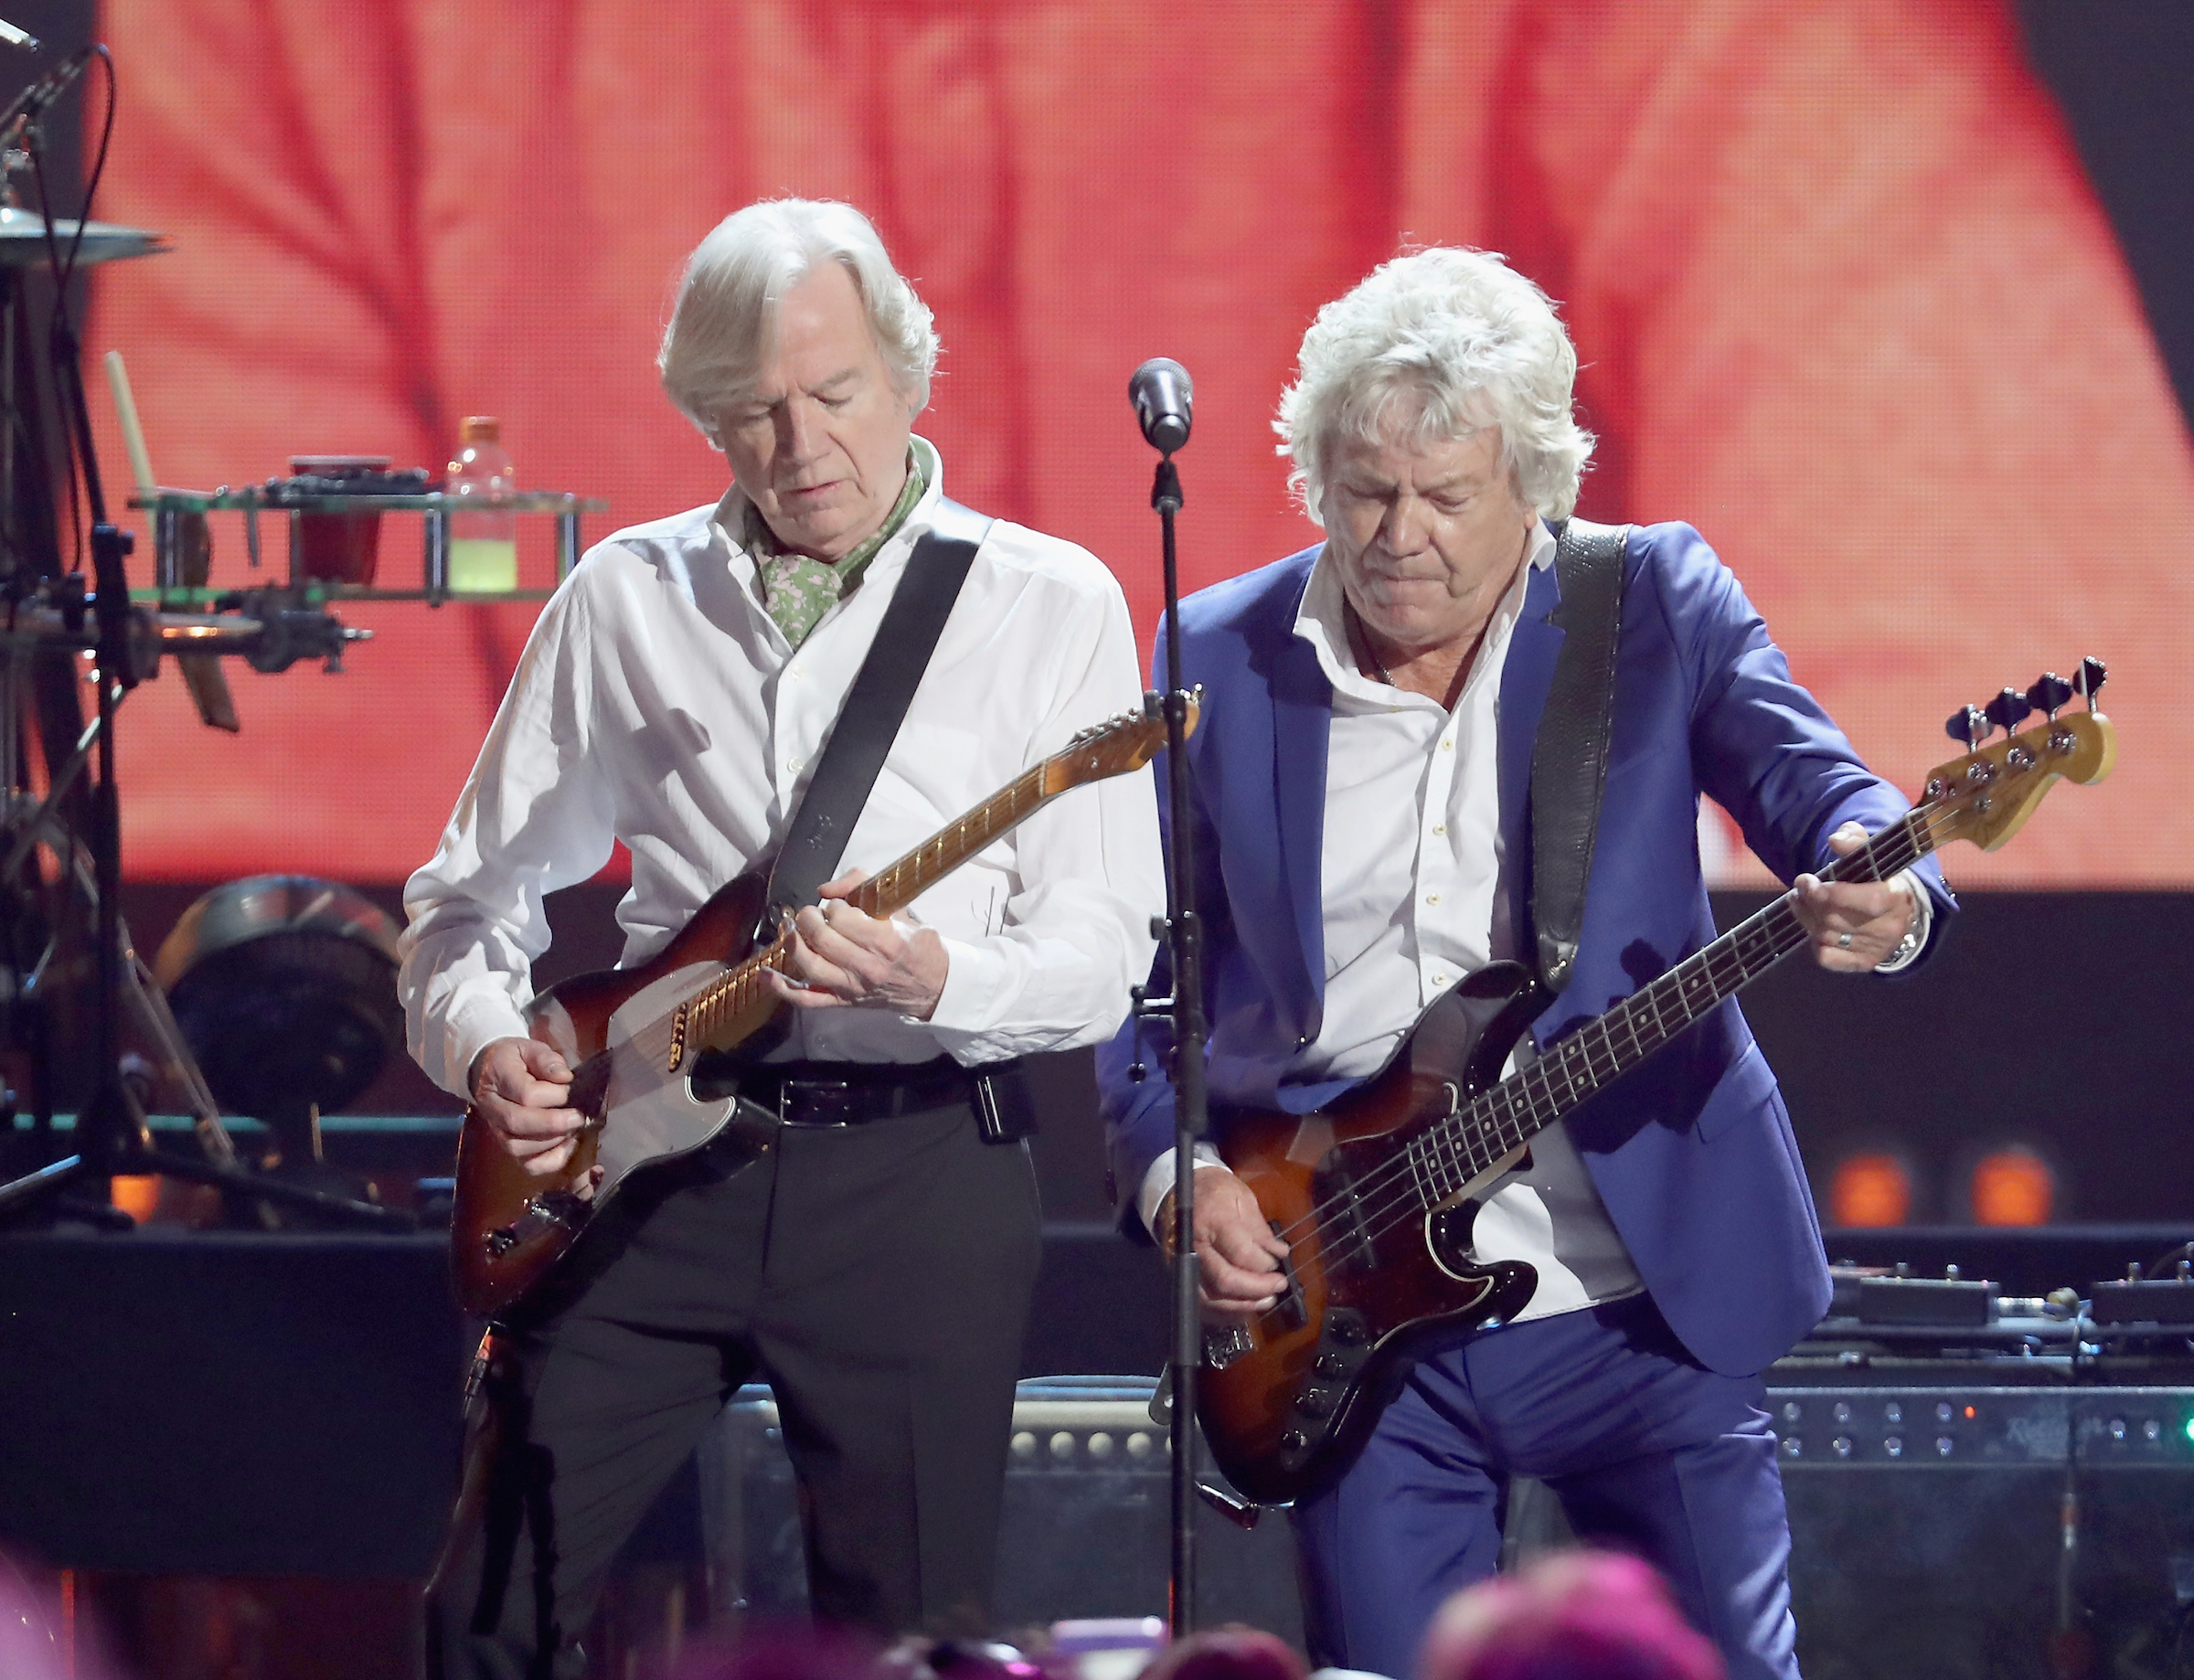 Moody Blues At Overdue 2018 Rock Hall Induction Best Classic Bands